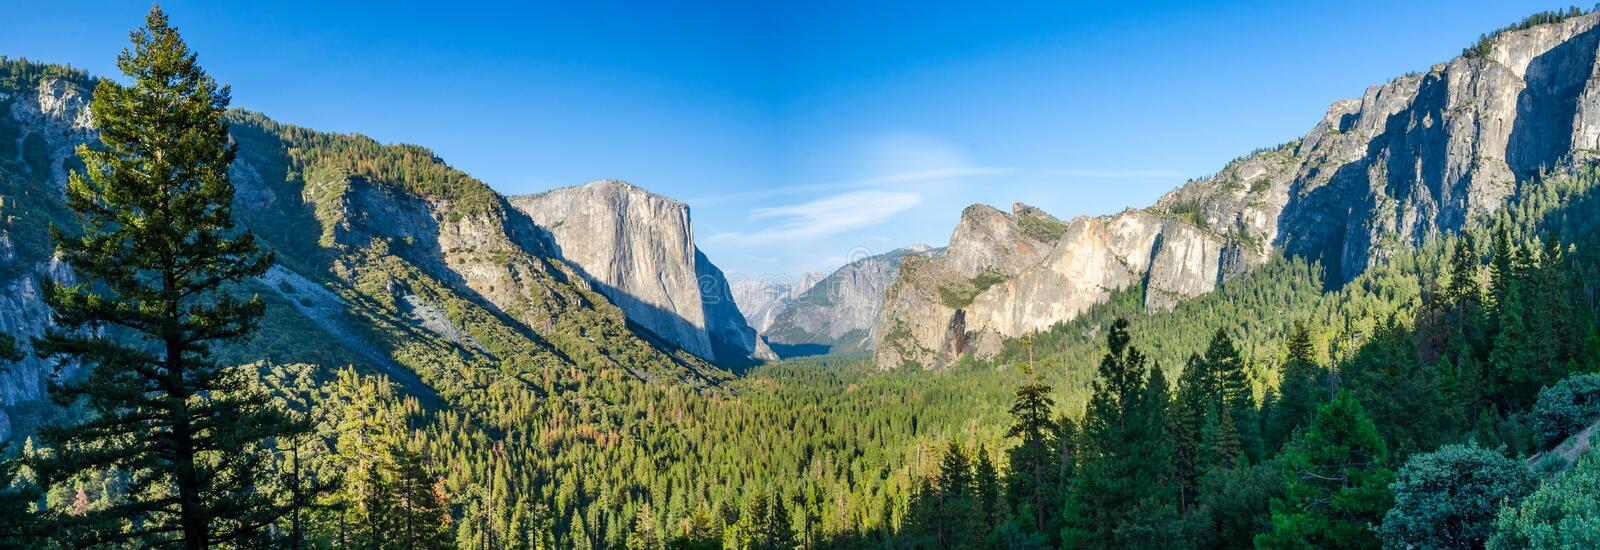 Yosemite Valley panorama. During the day stock images